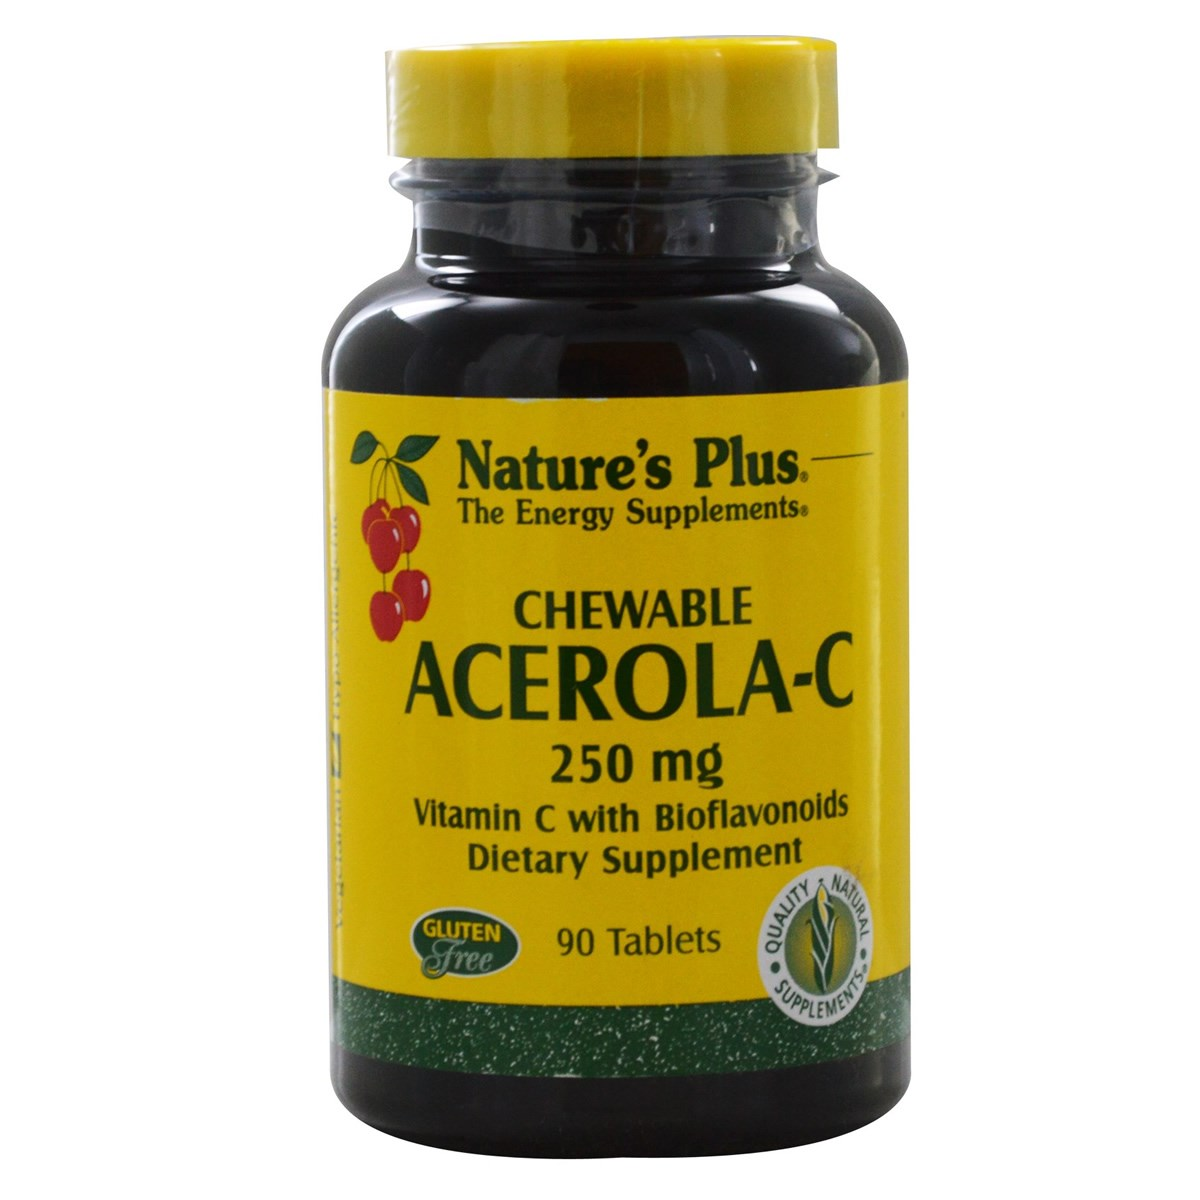 Natures Plus Acerola-C Complex - Chewable Vitamin C 250 mg Tablets